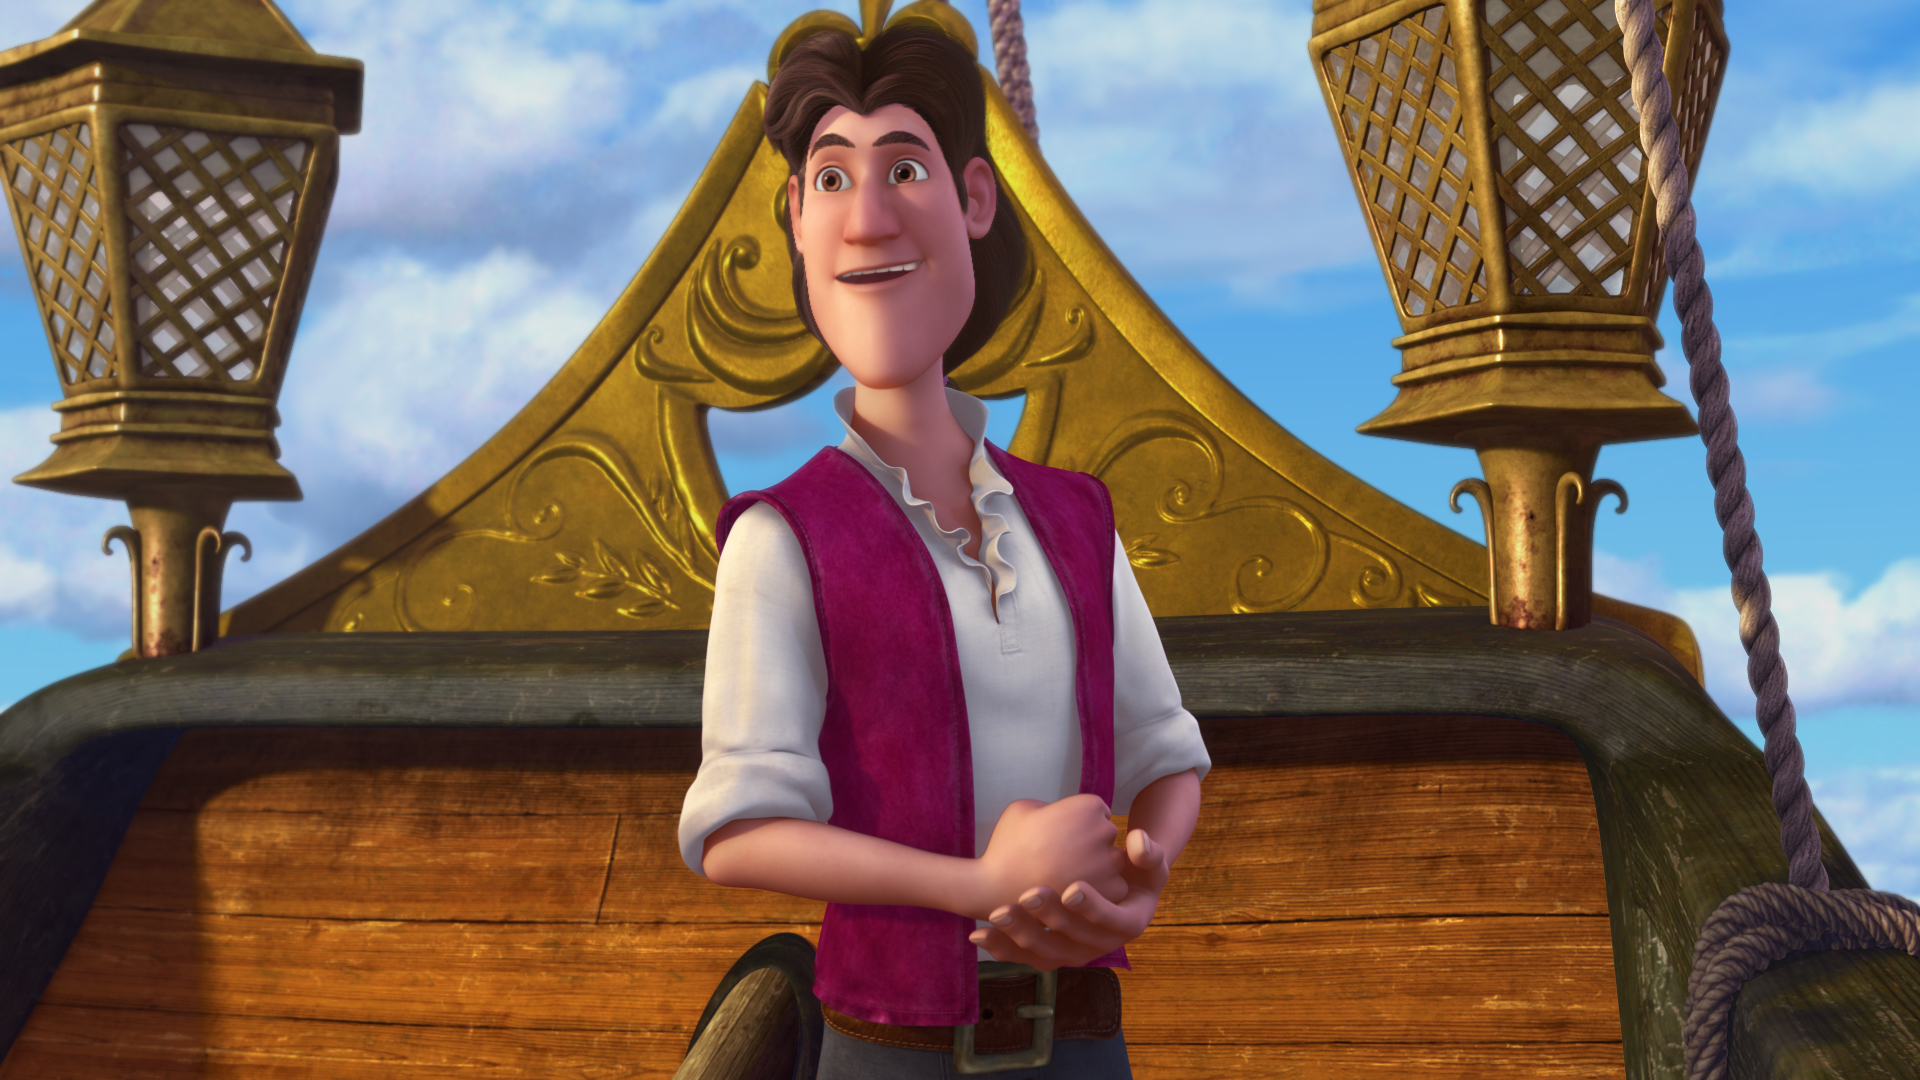 He may become the dreaded Captain Hook, but right now, he's just a nice-looking guy named James.